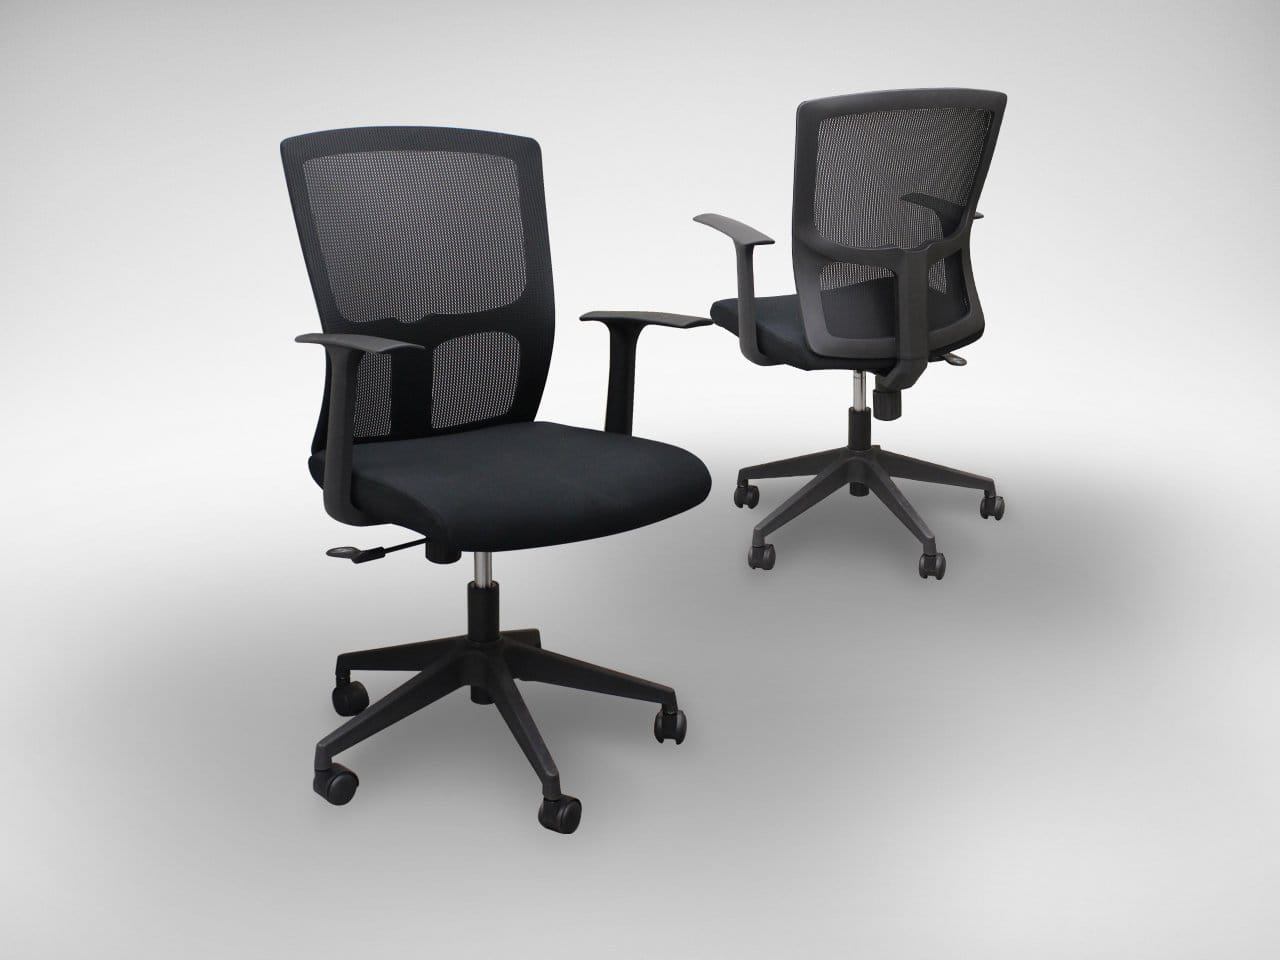 Realspace Chairs Kasa Midback Office Chair Comfort Design The Chair